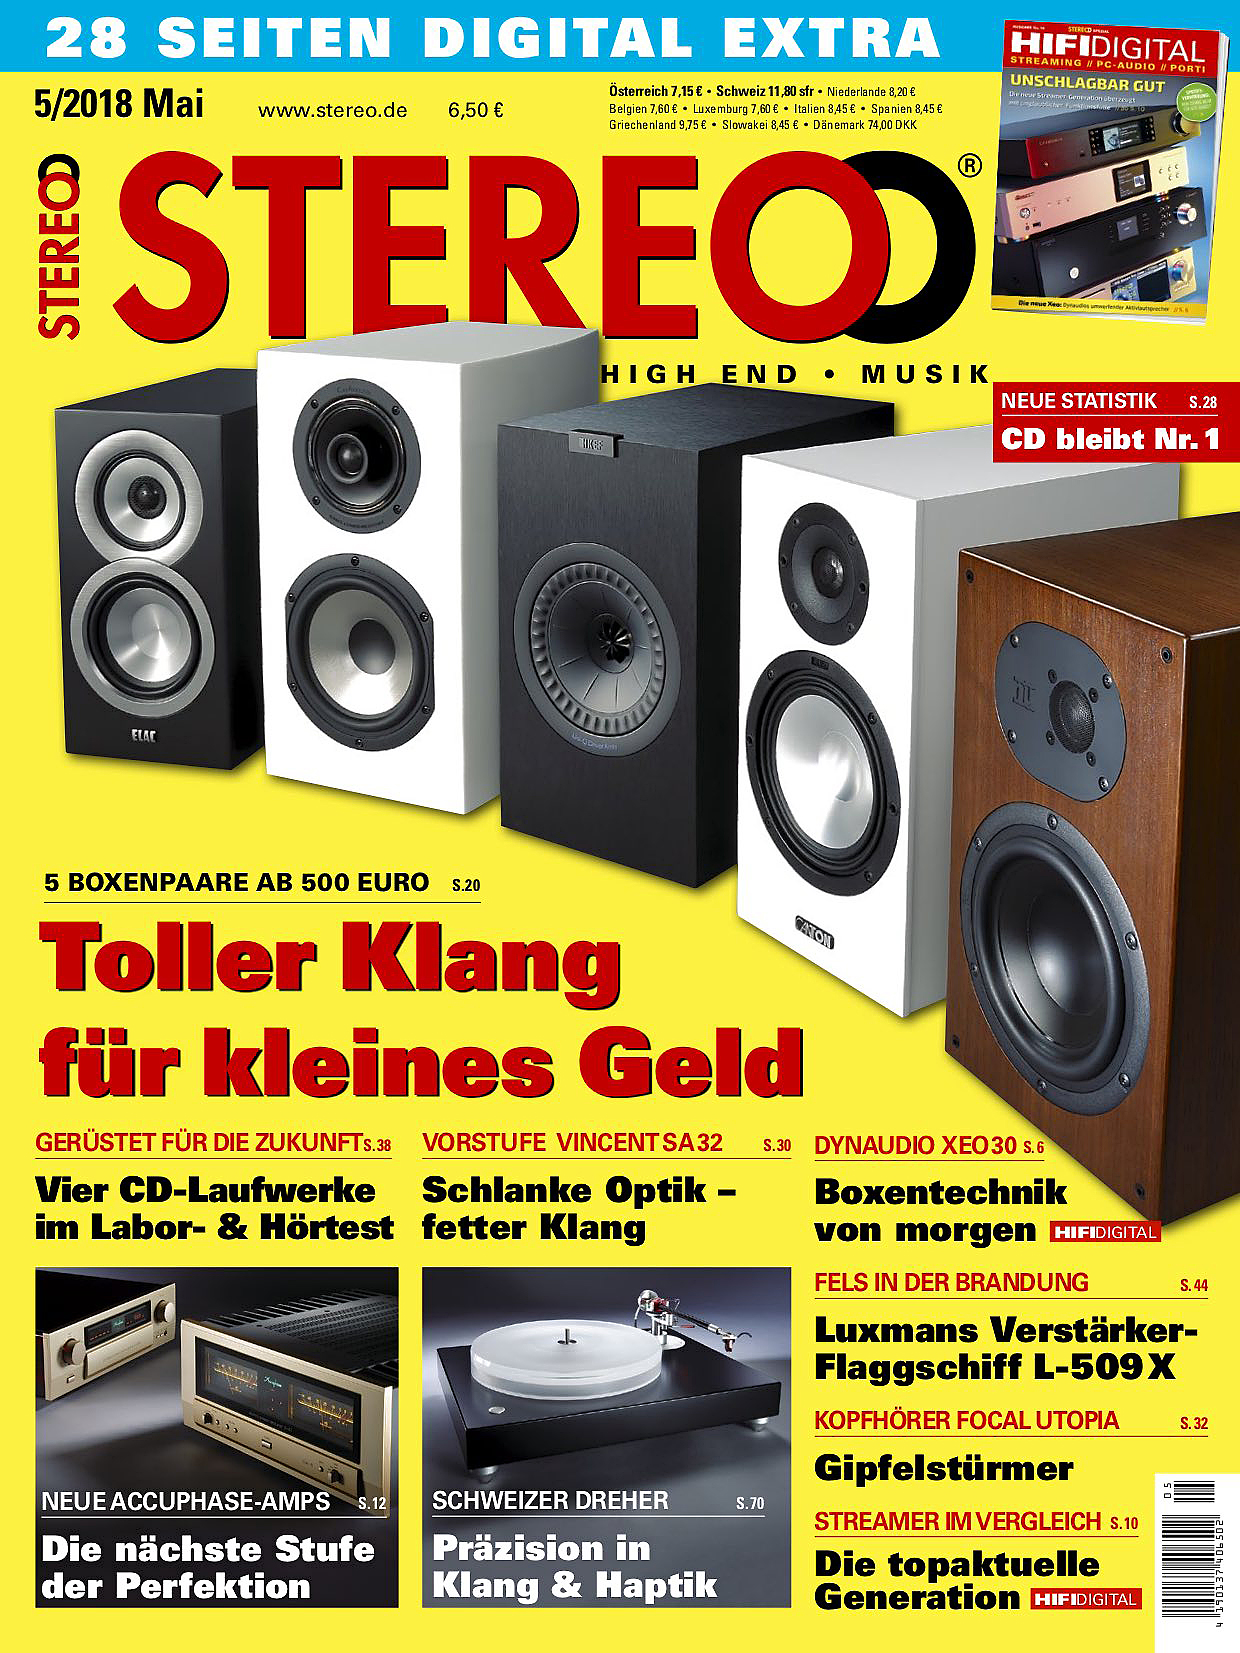 Stereo Ausgabe 5 2018 Project 116 Subwoofer Amp